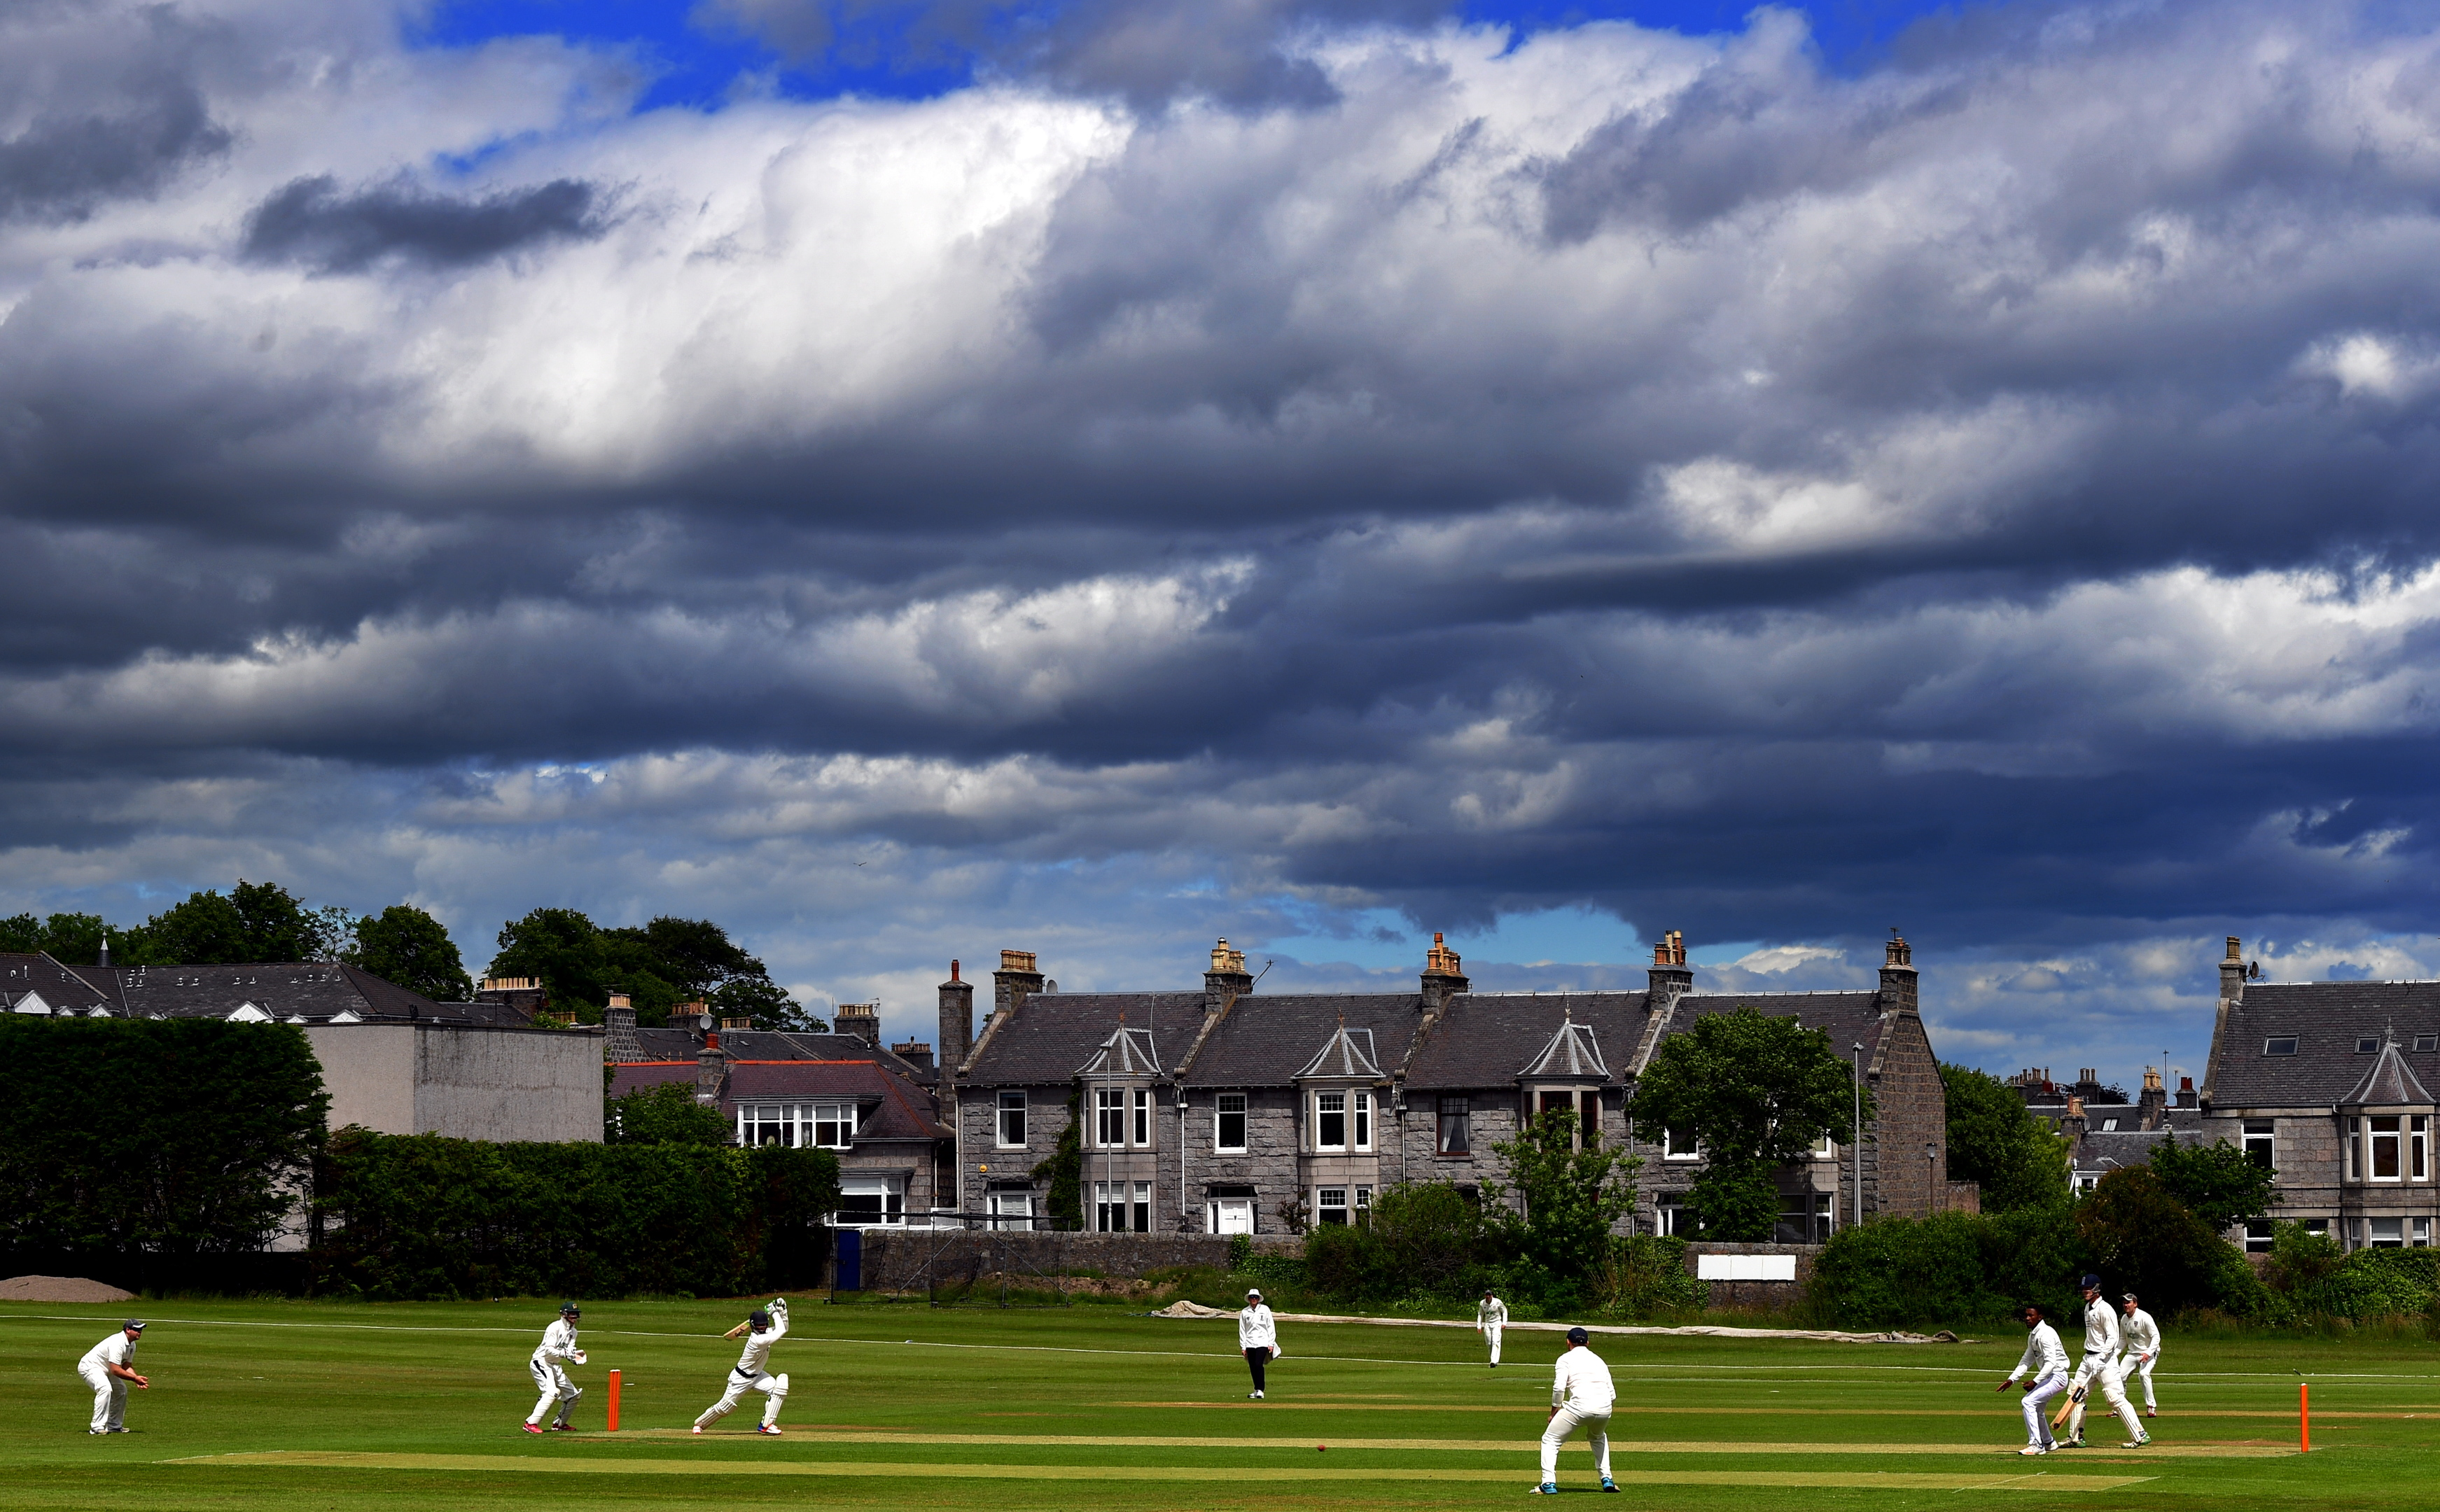 Mannofield has been a grand sporting venue for more than 150 years.